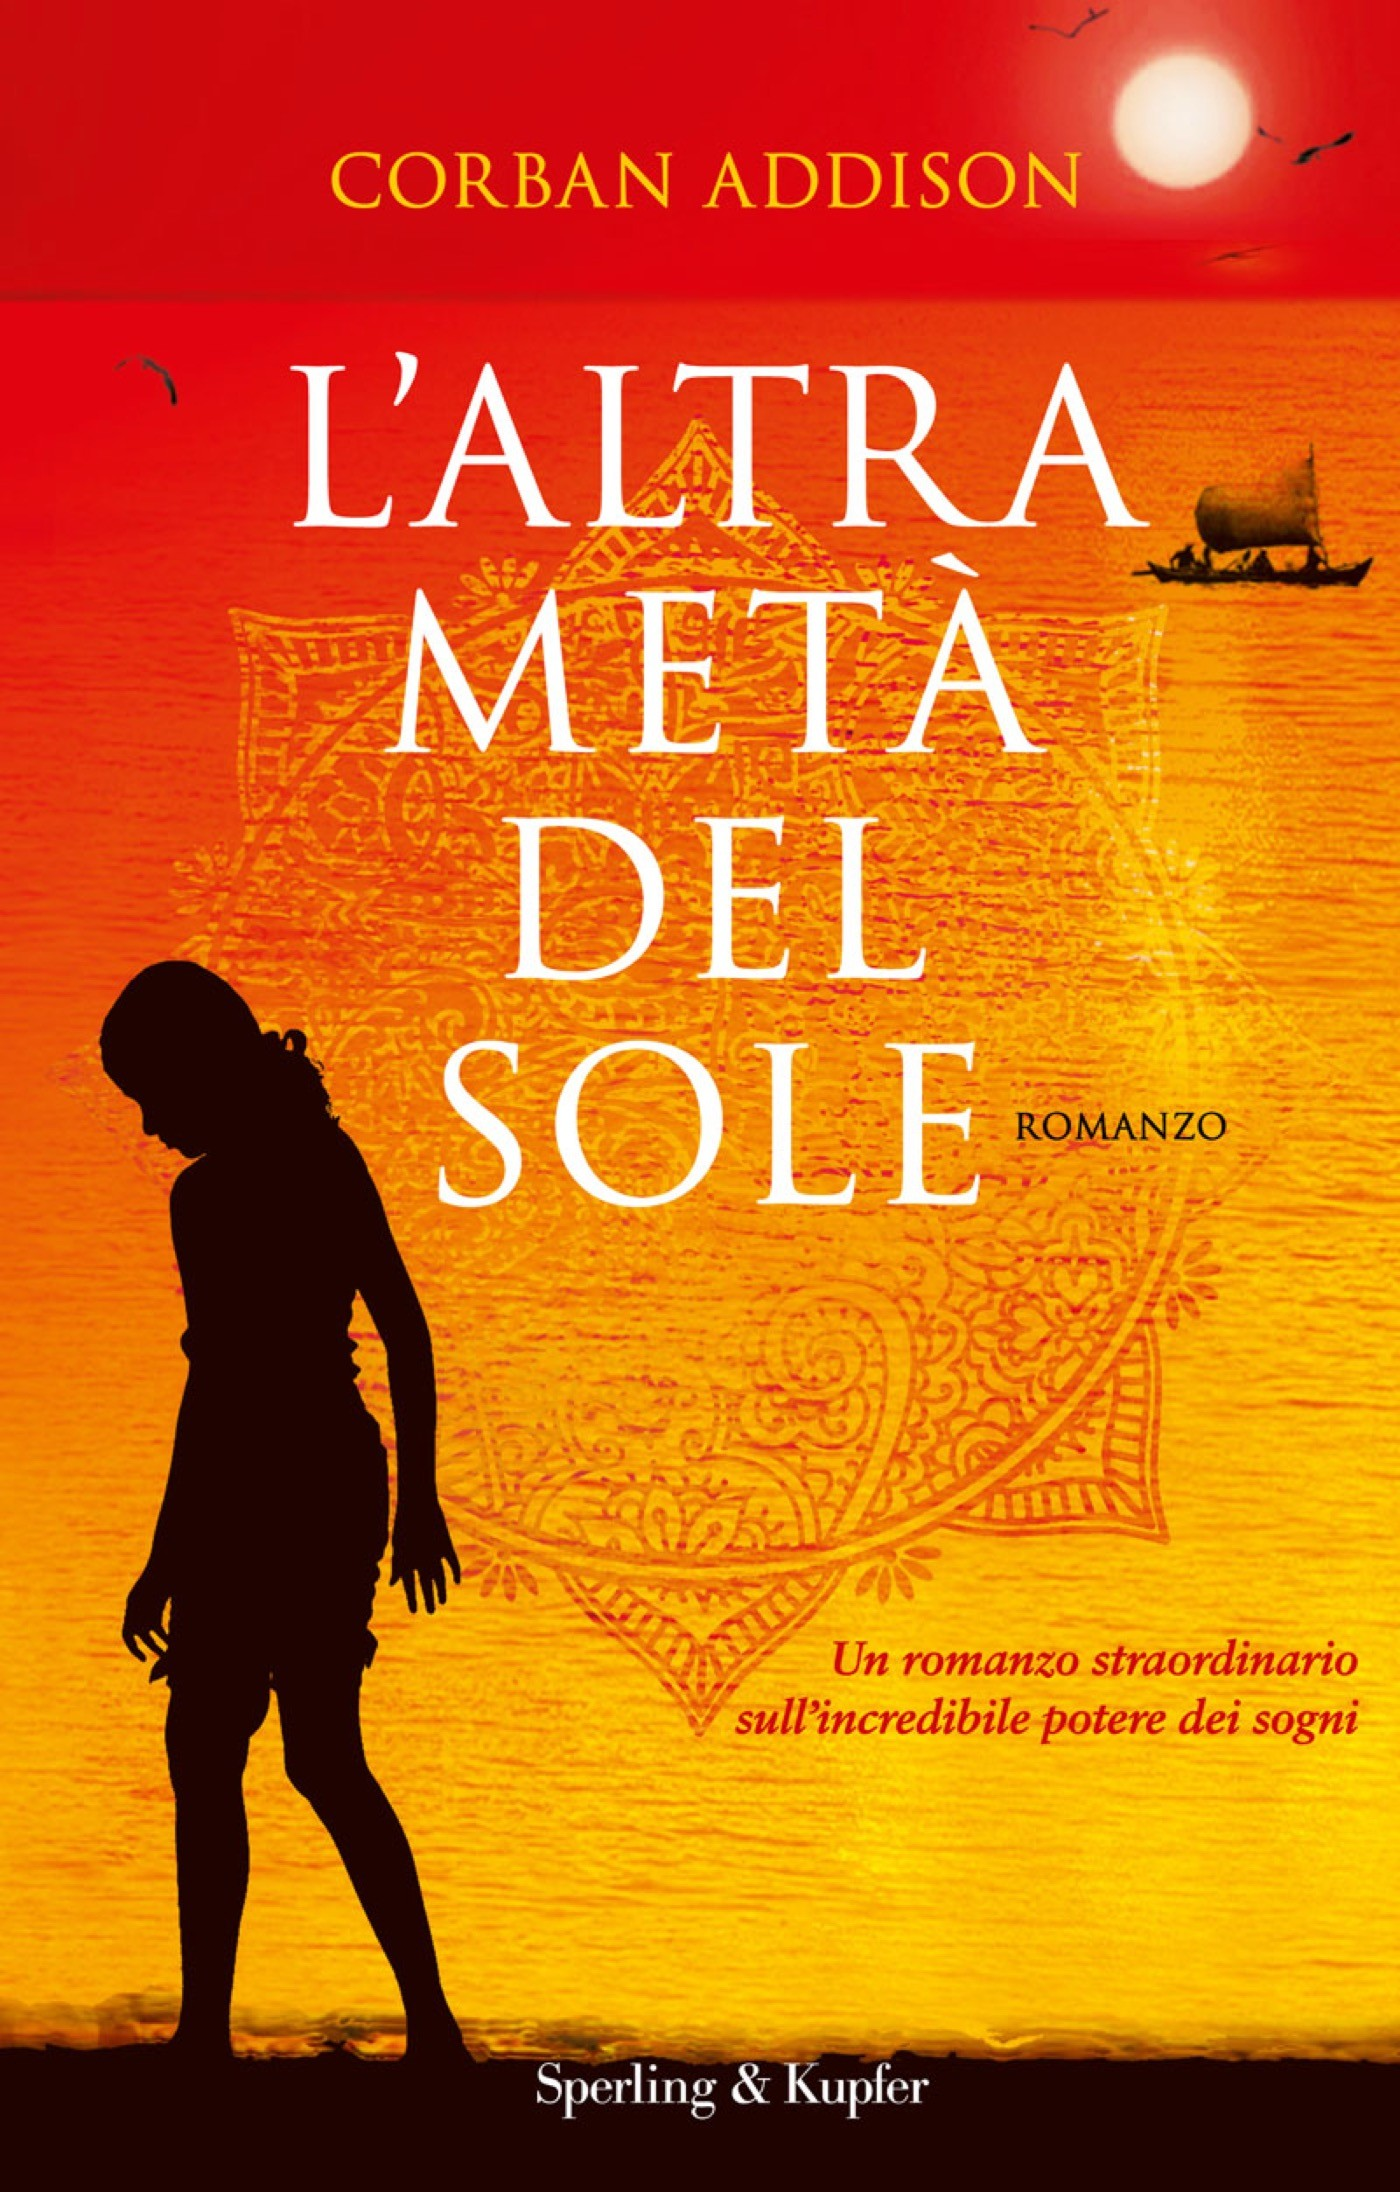 http://alessandria.bookrepublic.it/api/books/9788873396161/cover